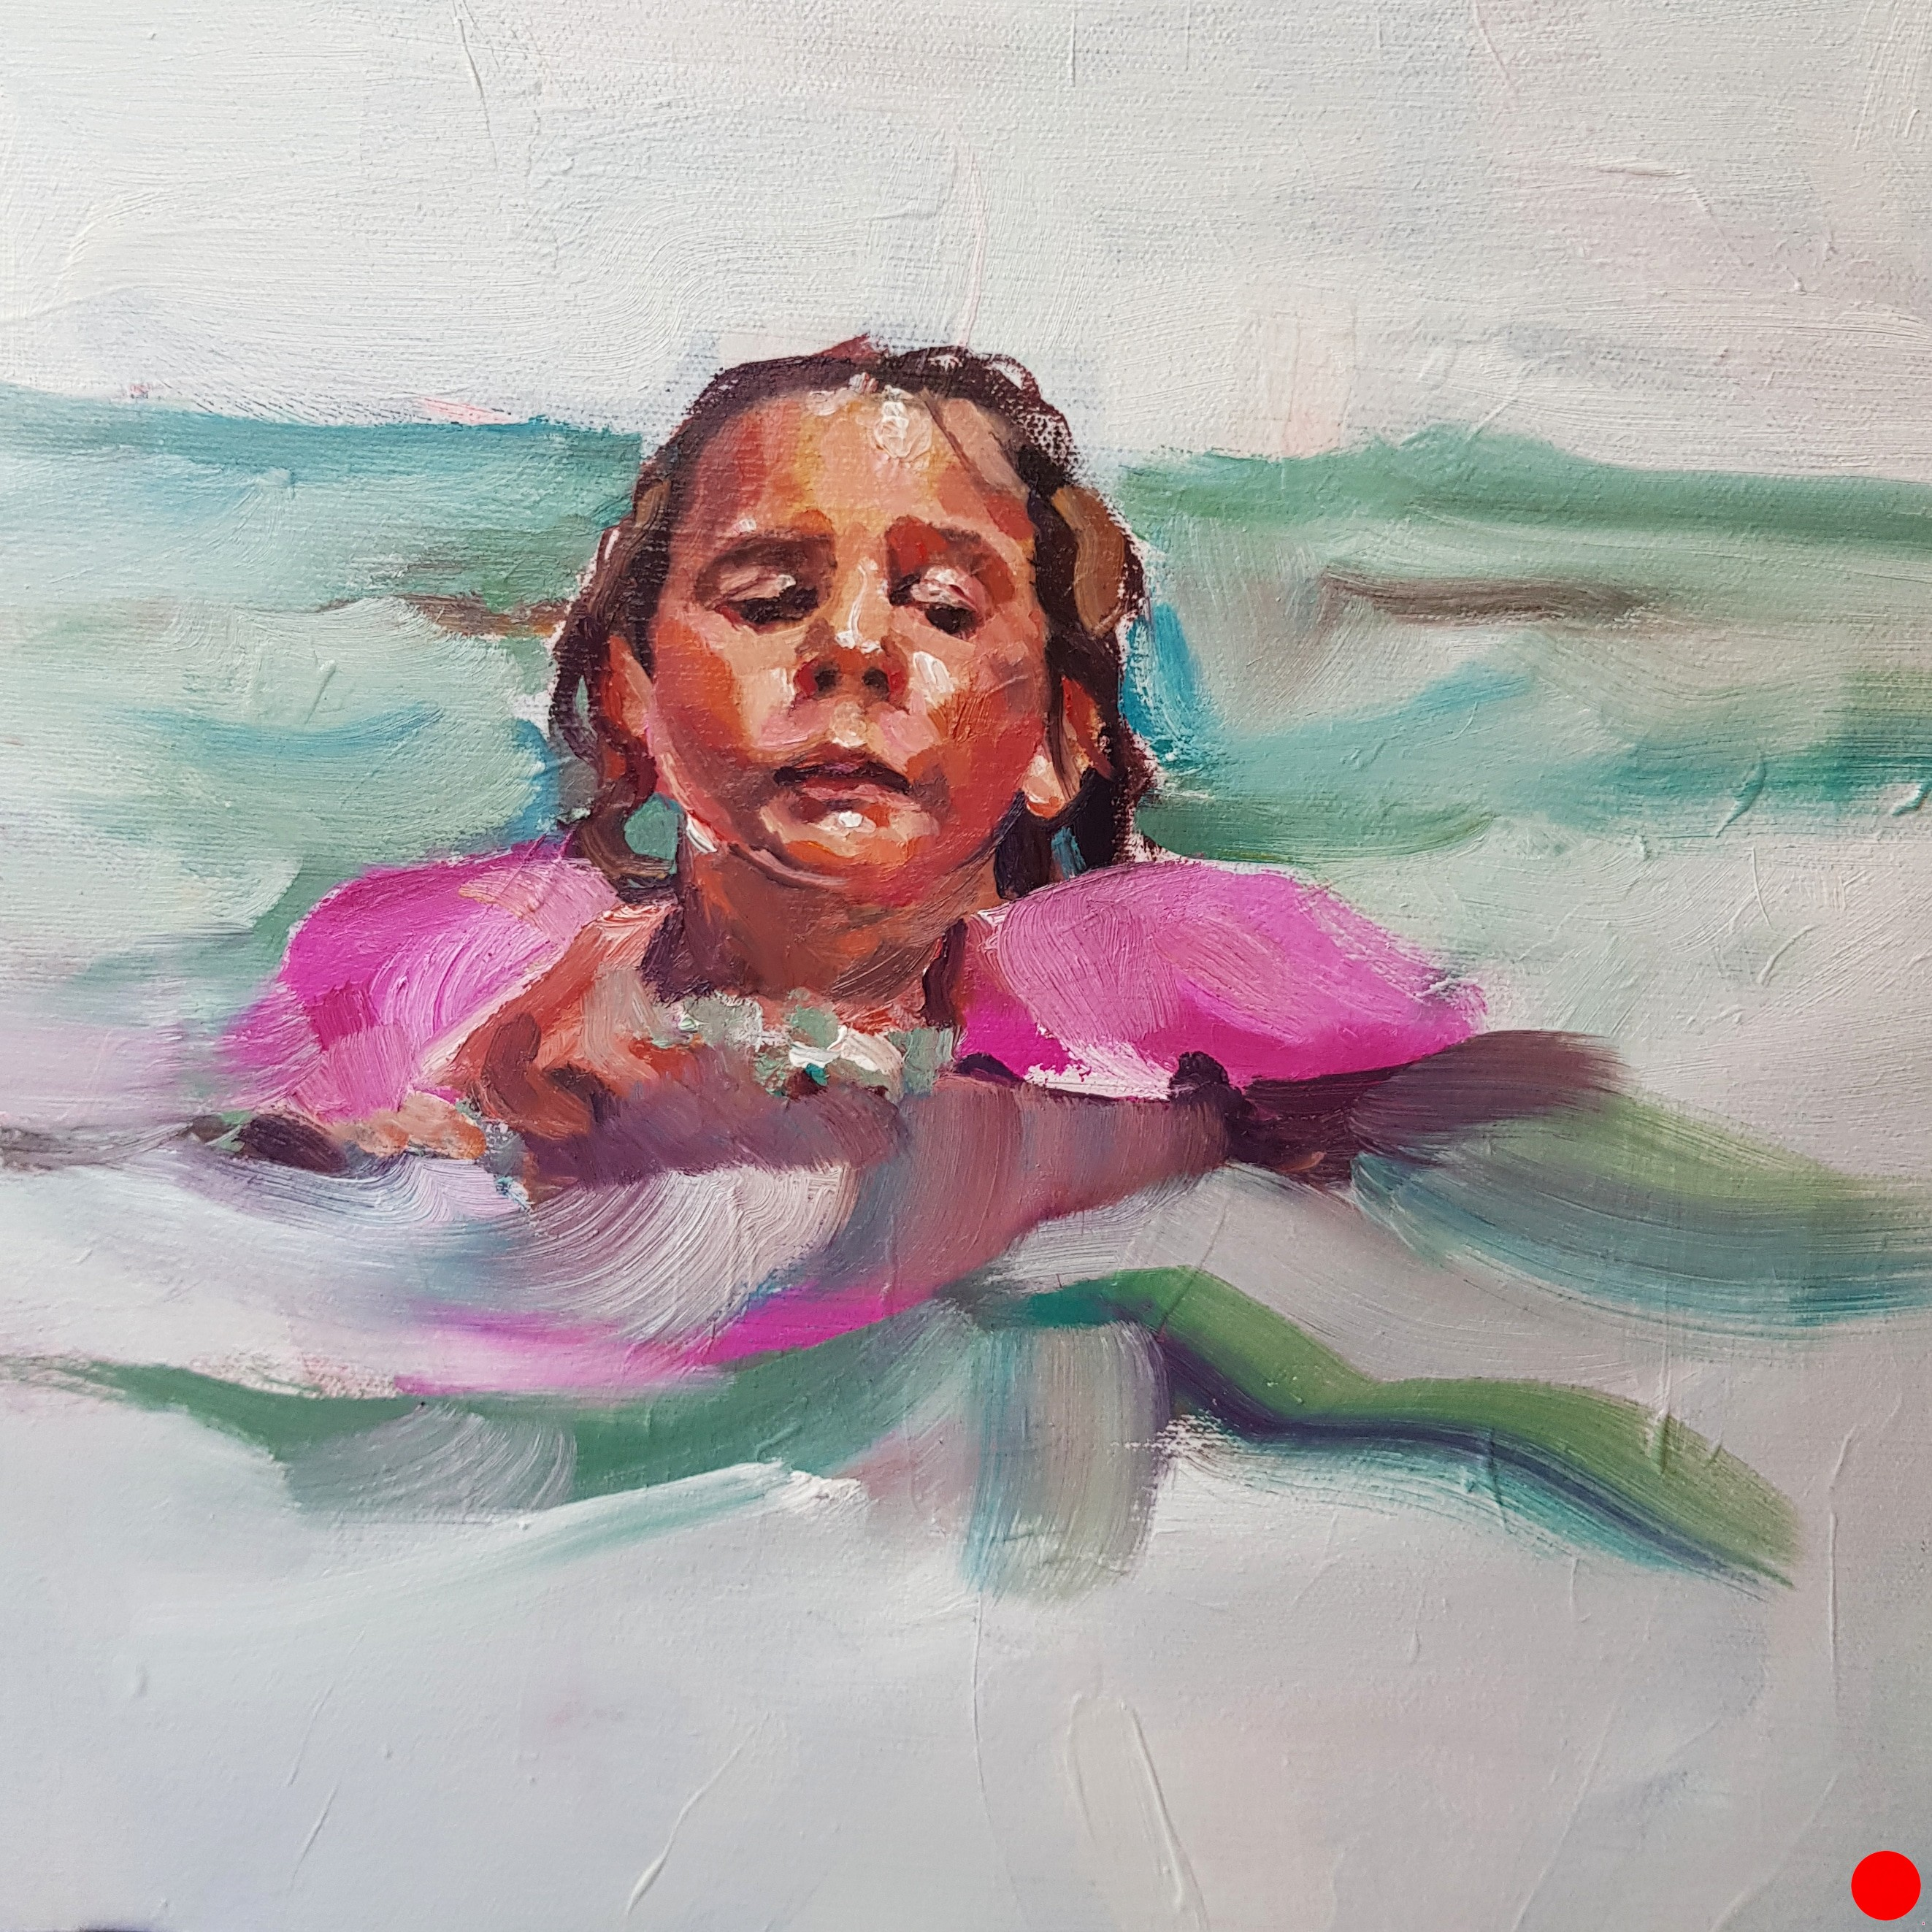 """LEARNING TO SWIM"" OIL PAINT ON 3D CANVAS, MEASURES: 11×11″, YEAR: 2018, sold"